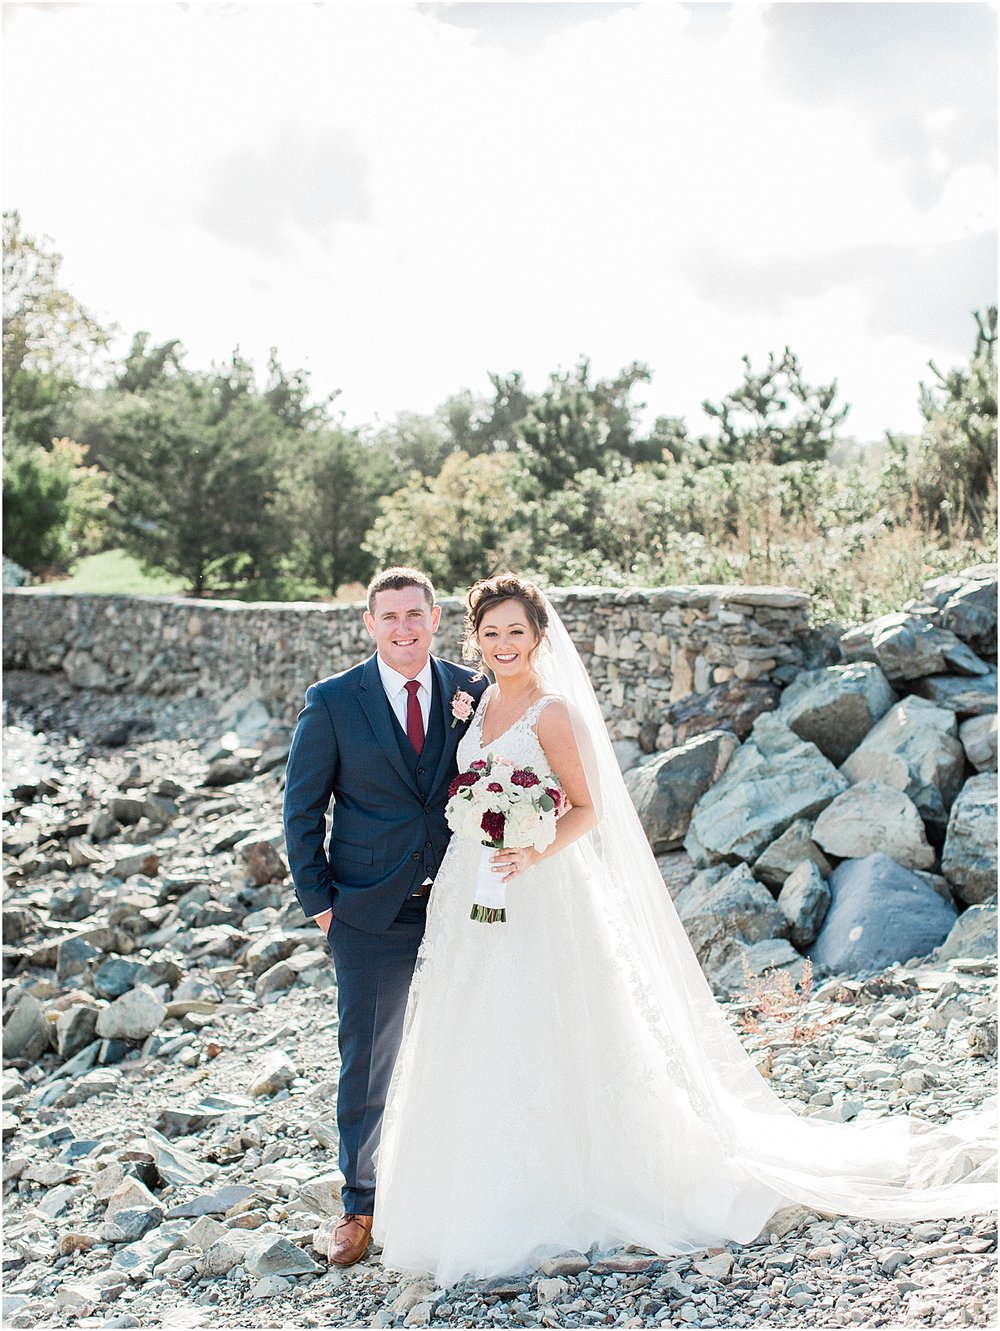 shannon_daniel_dan_atlantic_resort_saint_marys_st_mary_church_fall_newport_catholic_irish_cape_cod_boston_wedding_photographer_meredith_jane_photography_photo_1622.jpg